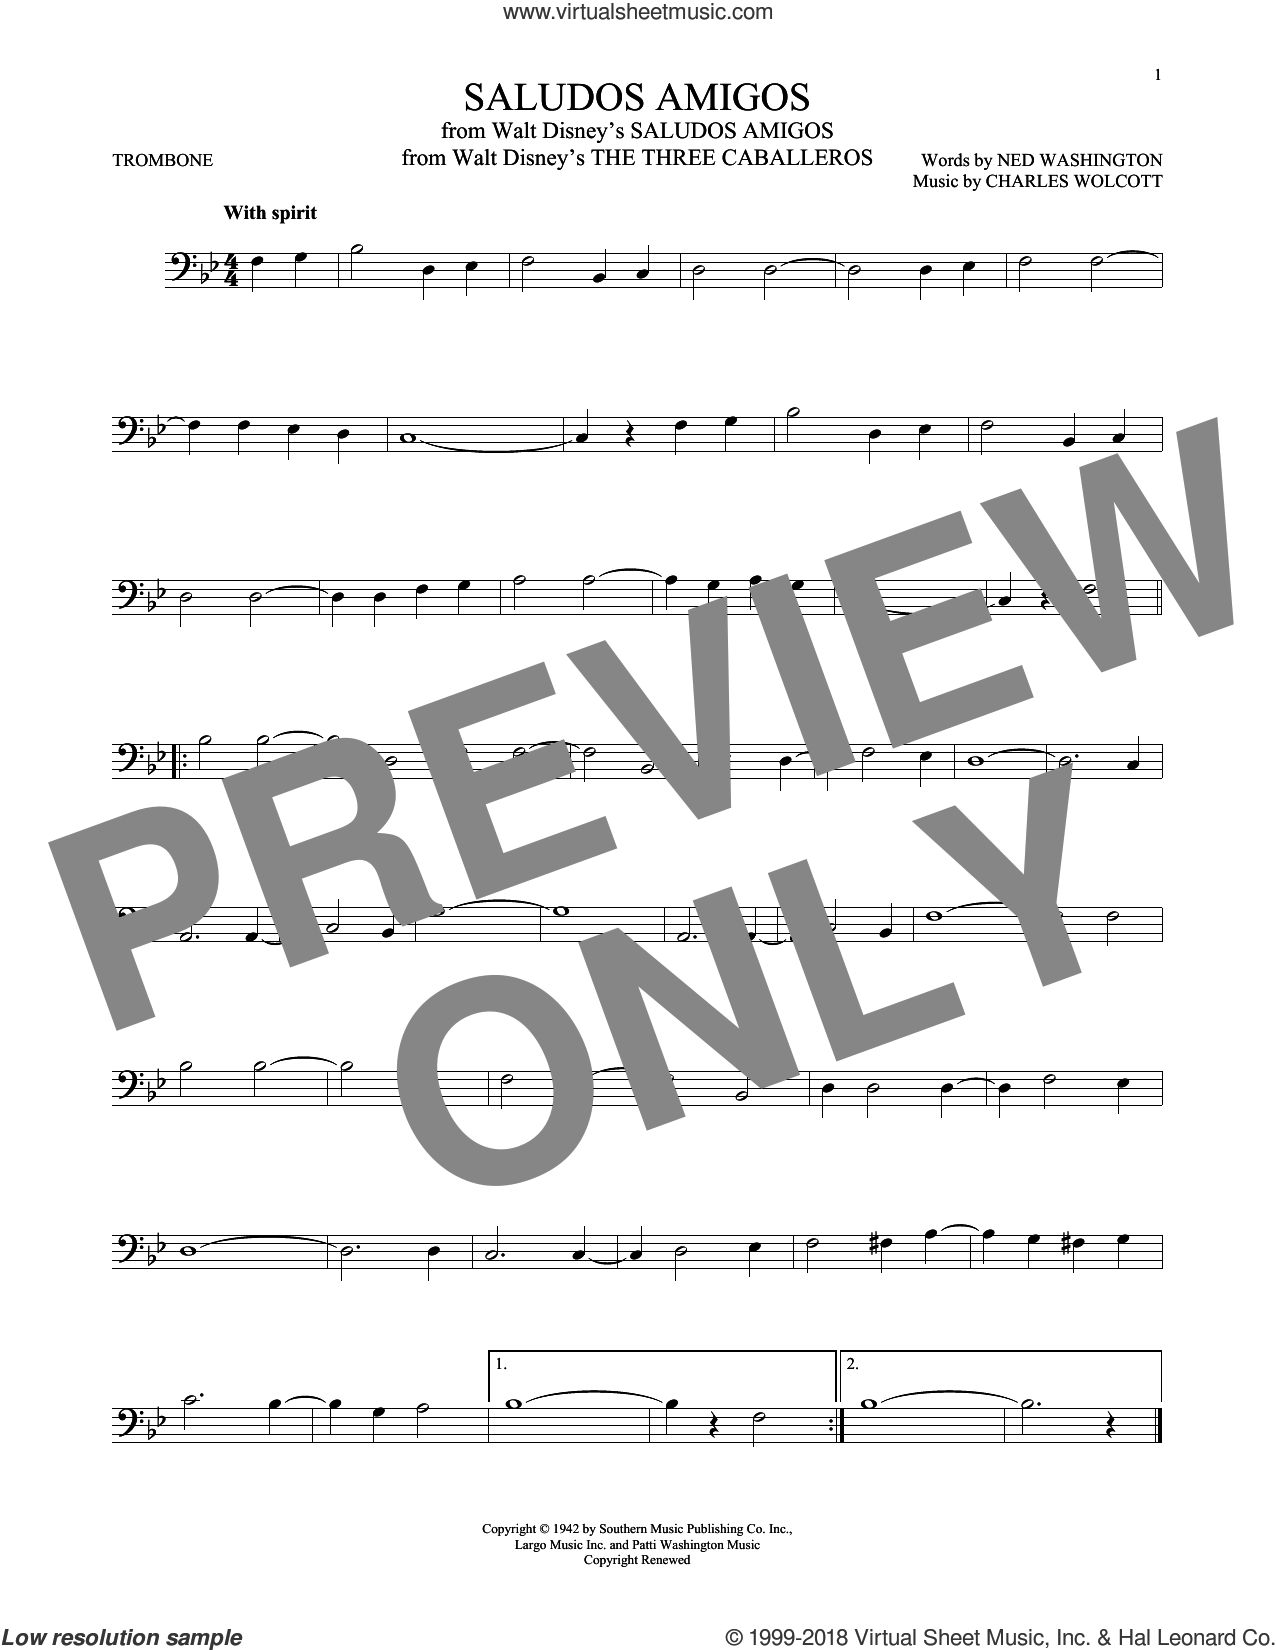 Saludos Amigos sheet music for trombone solo by Ned Washington and Charles Wolcott, intermediate skill level